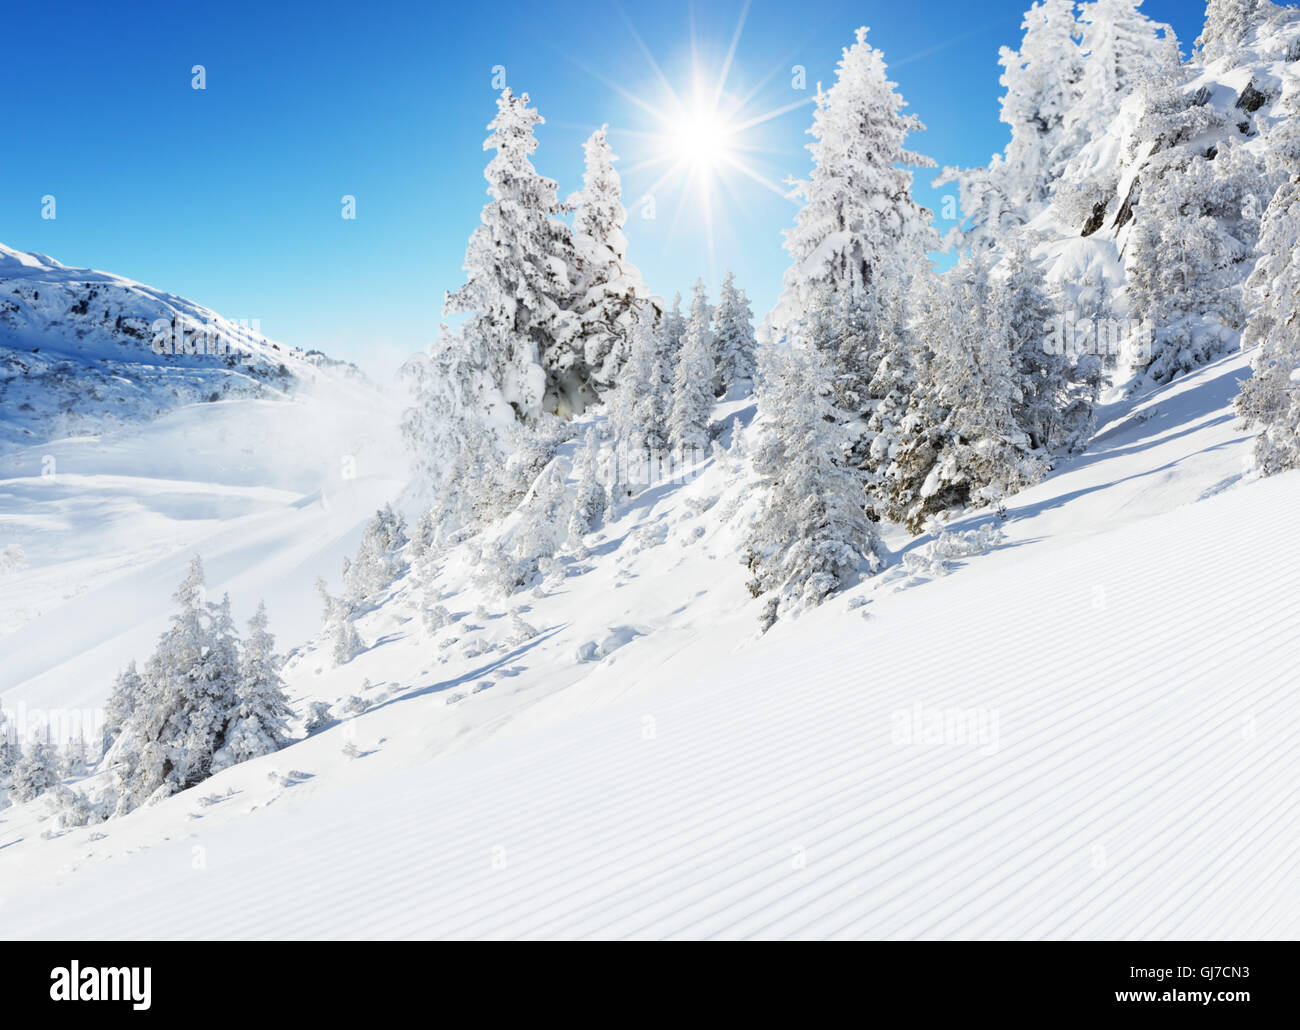 Beautiful winter landscape with ideal piste. Blue sky with sun light and high Alpine mountains on background - Stock Image